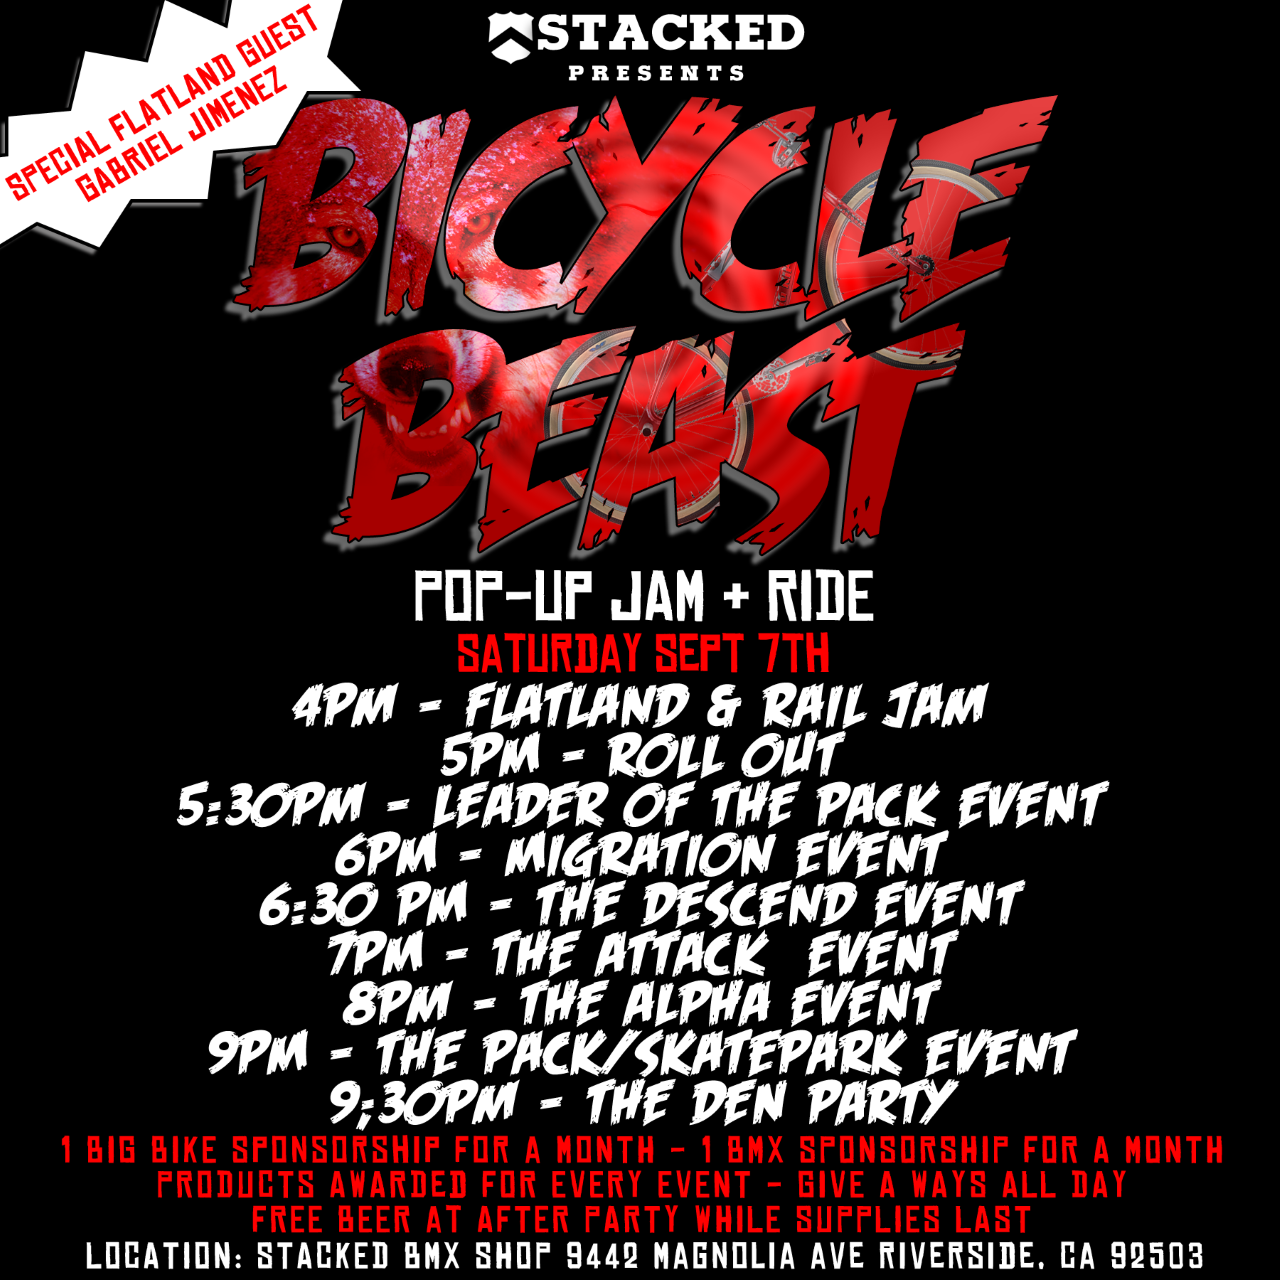 Stacked - Bicycle beast pop-up jam & ride